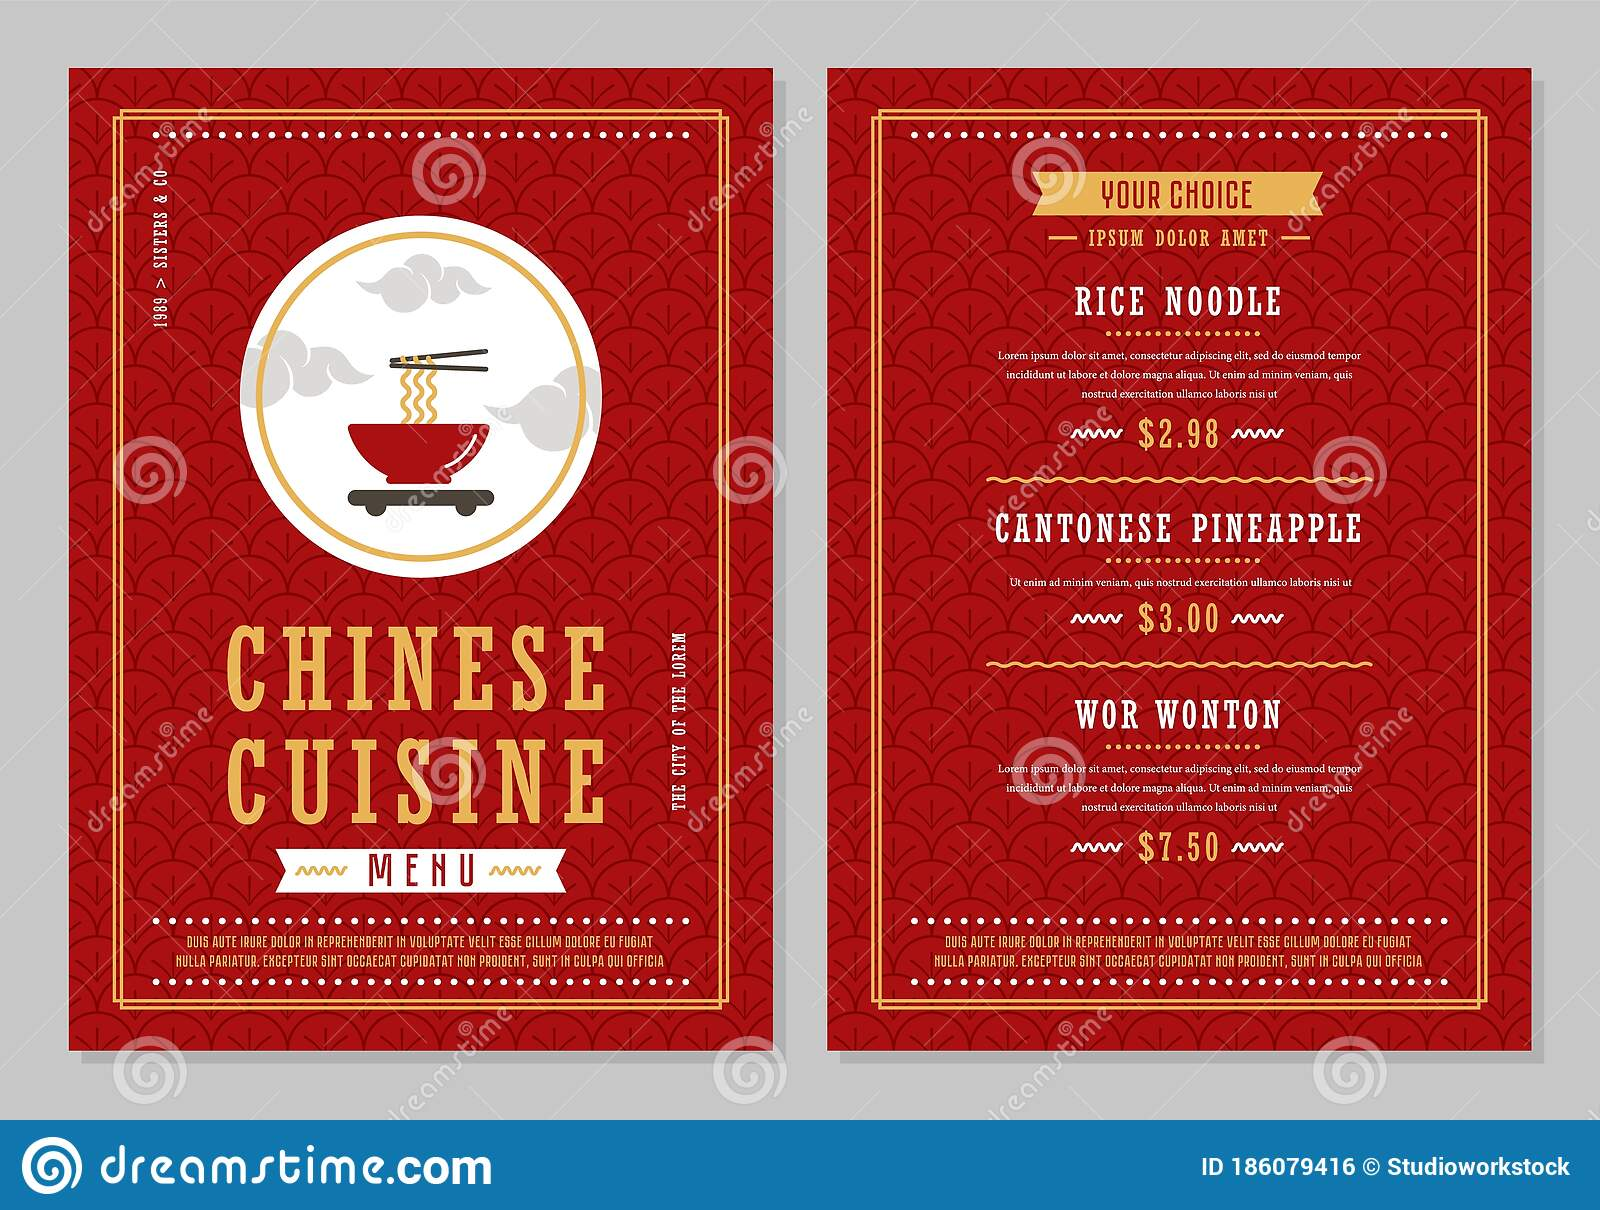 Chinese Menu Design Template Vectror Stock Illustration Illustration Of French Cover 186079416